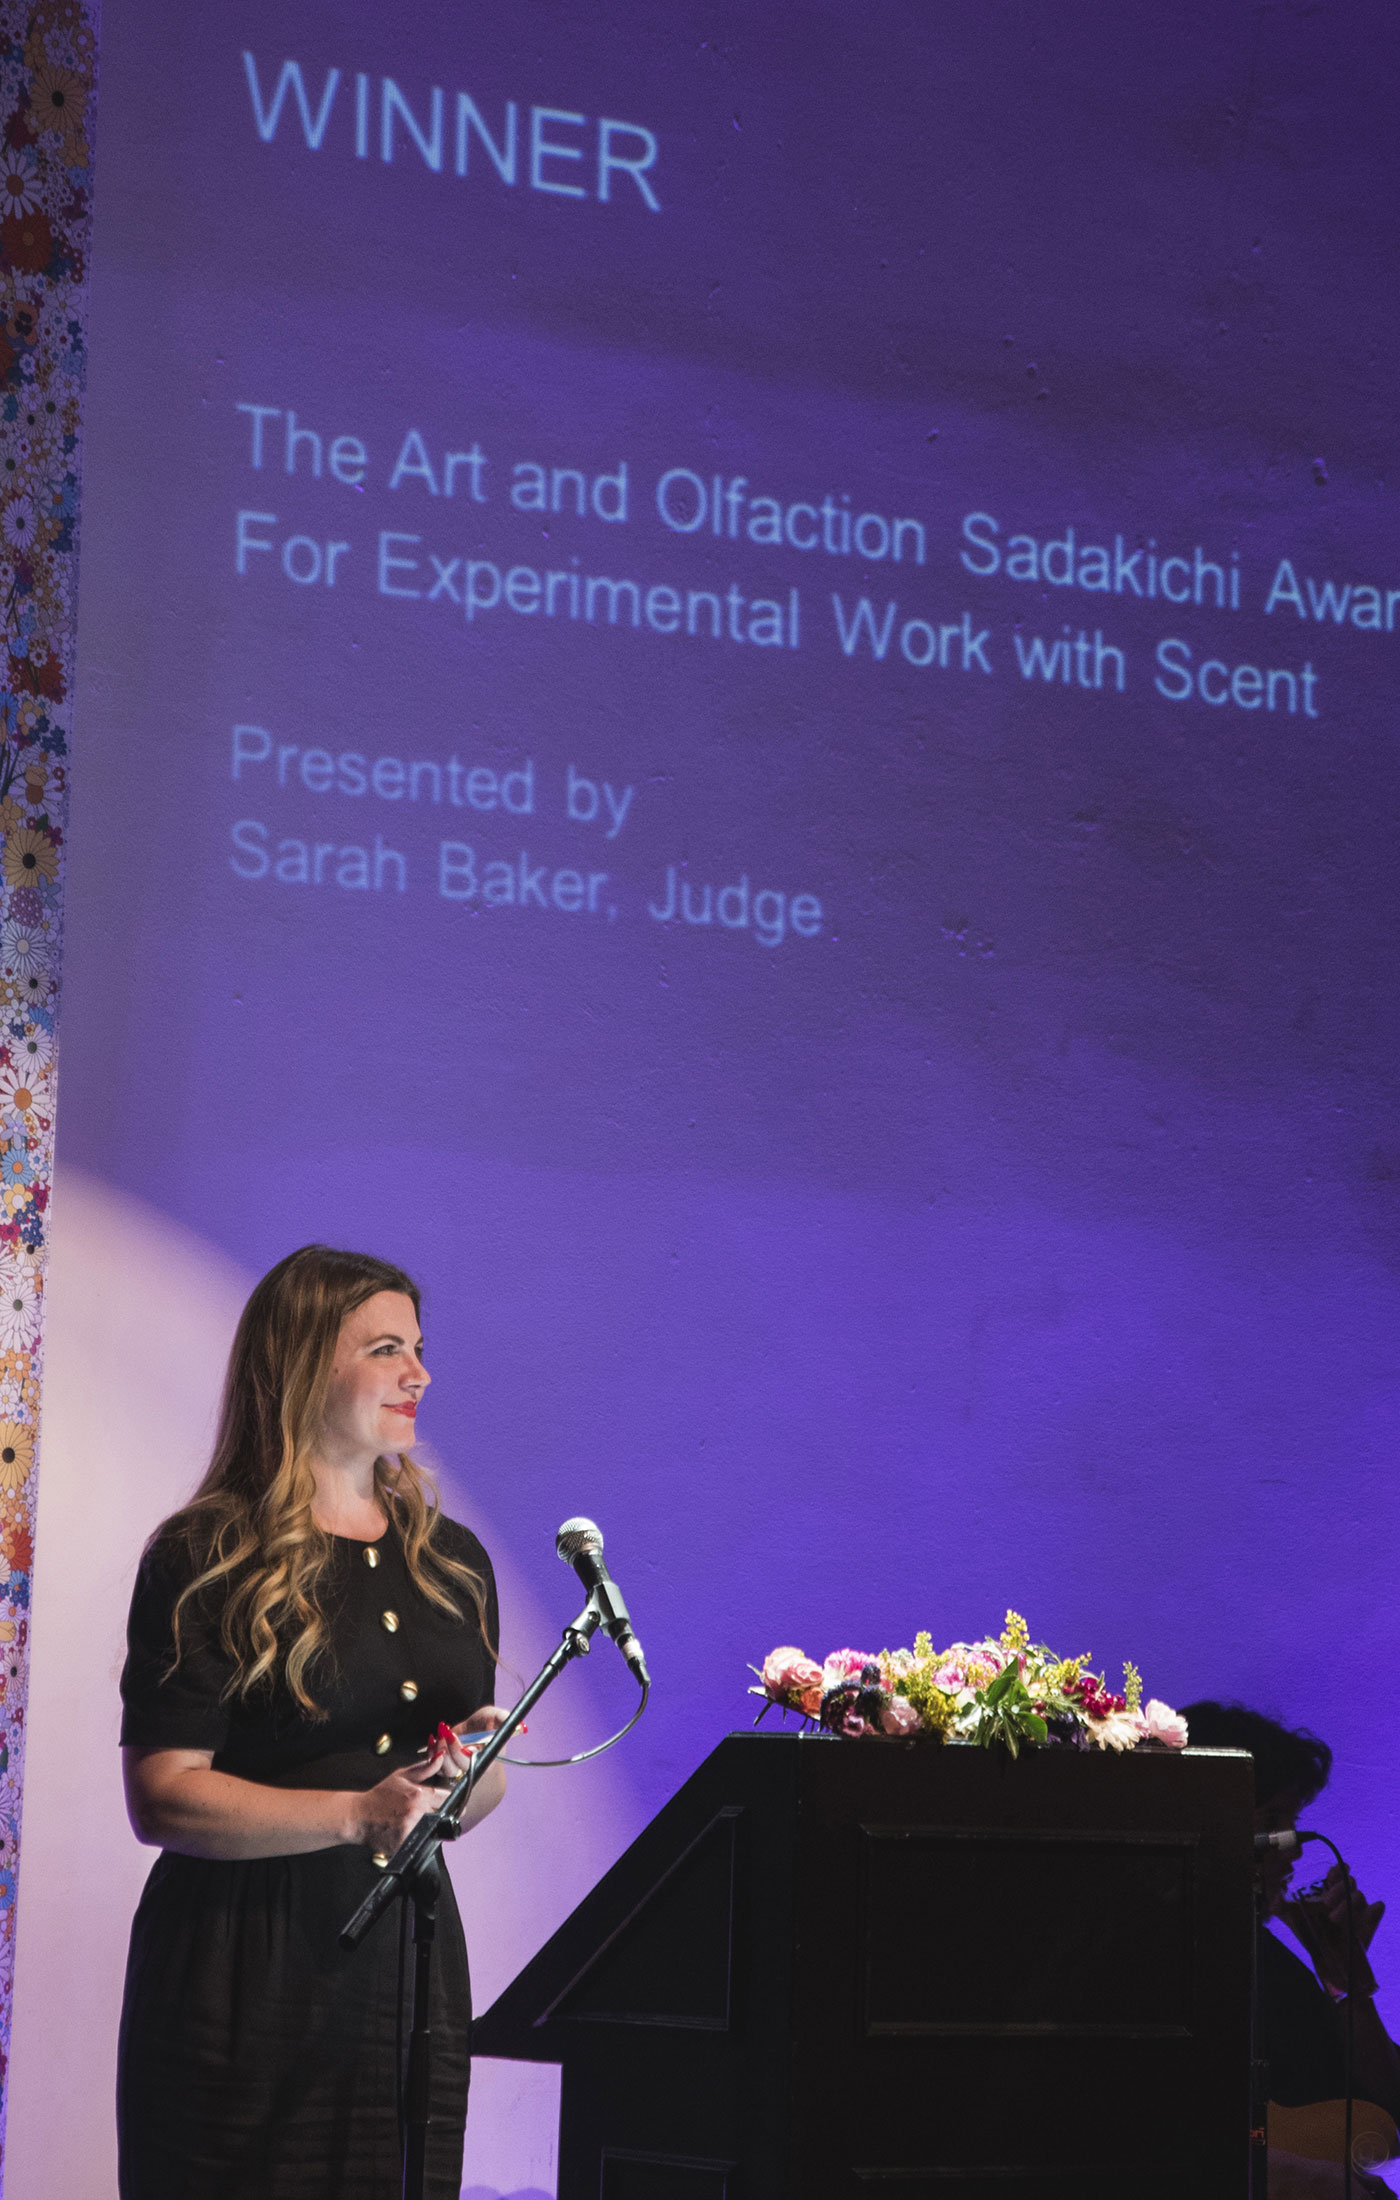 Sarah Baker at The Art and Olfaction Awards, Photo by Marina Chichi